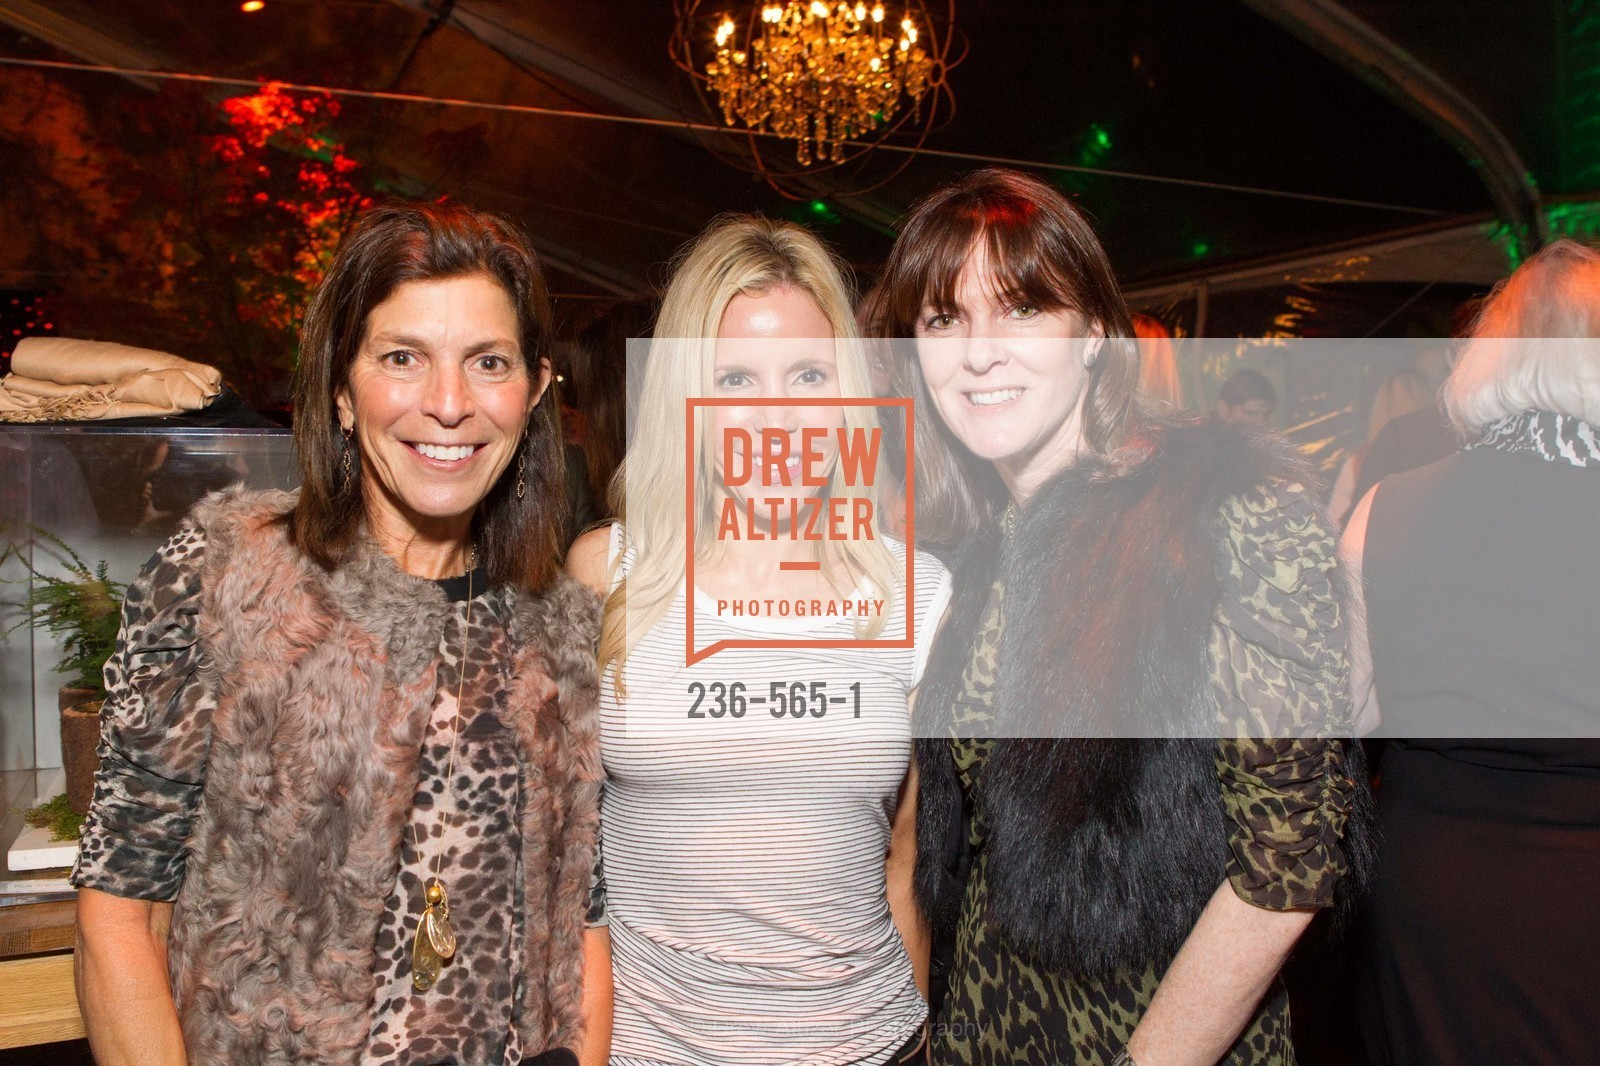 Susan Swig, Lana Adair, Allison Speer, GLAAD GALA Kick-Off Party Hosted by SAKS FIFTH AVENUE, Saks Fifth Avenue. 384 Post Street, September 12th, 2014,Drew Altizer, Drew Altizer Photography, full-service agency, private events, San Francisco photographer, photographer california